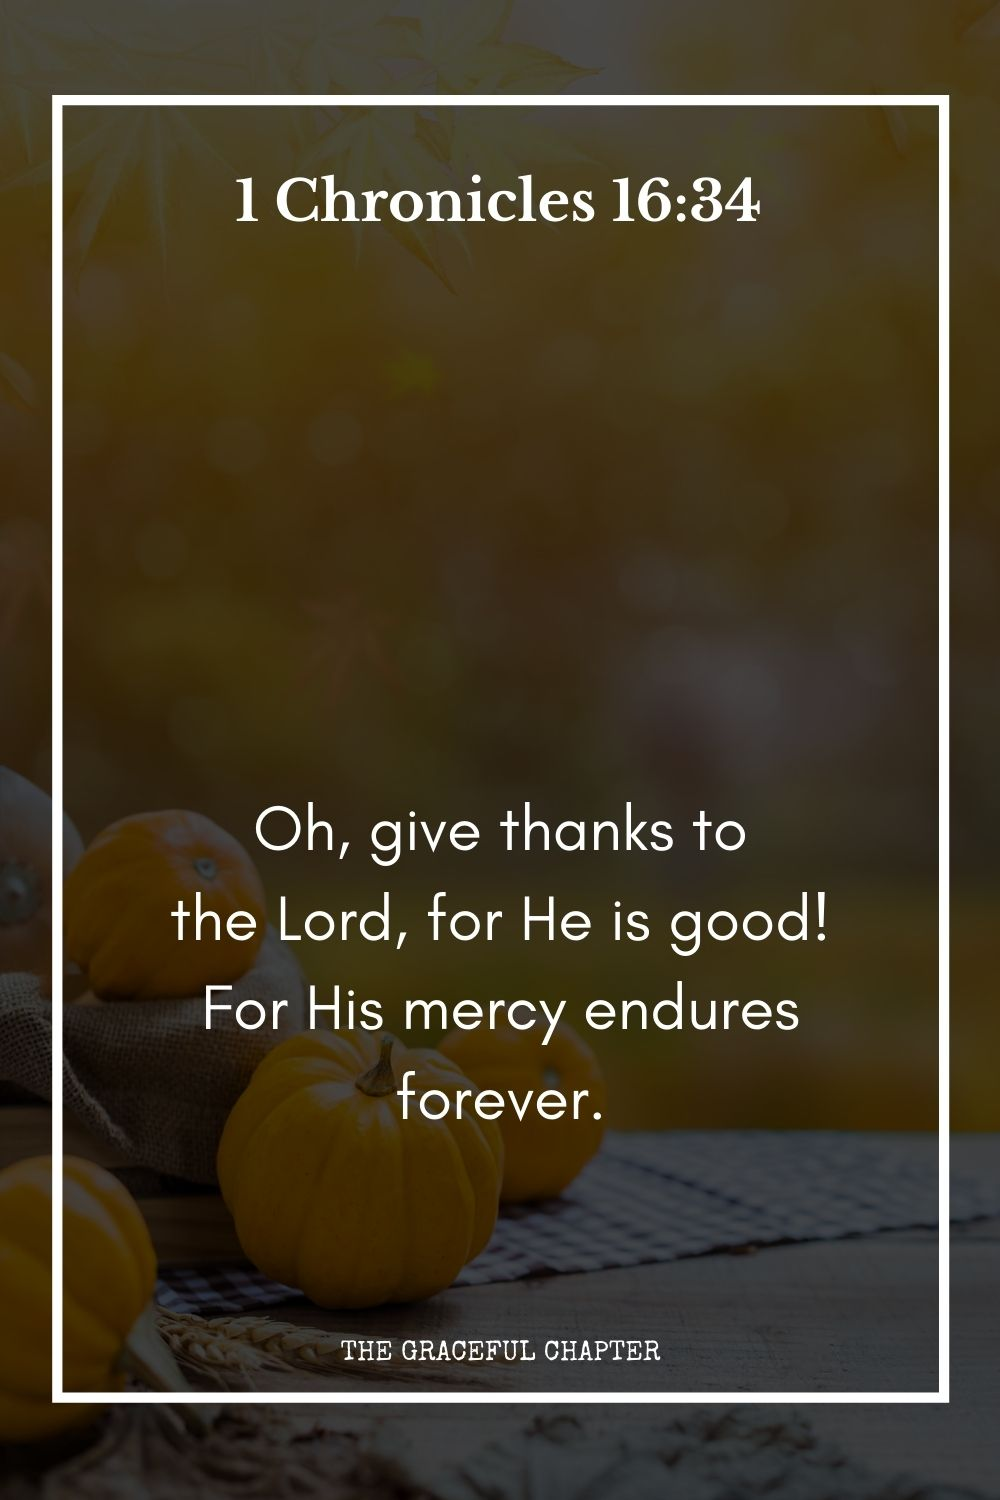 Oh, give thanks to the Lord, for He is good!  For His mercy endures forever. 1 Chronicles 16:34